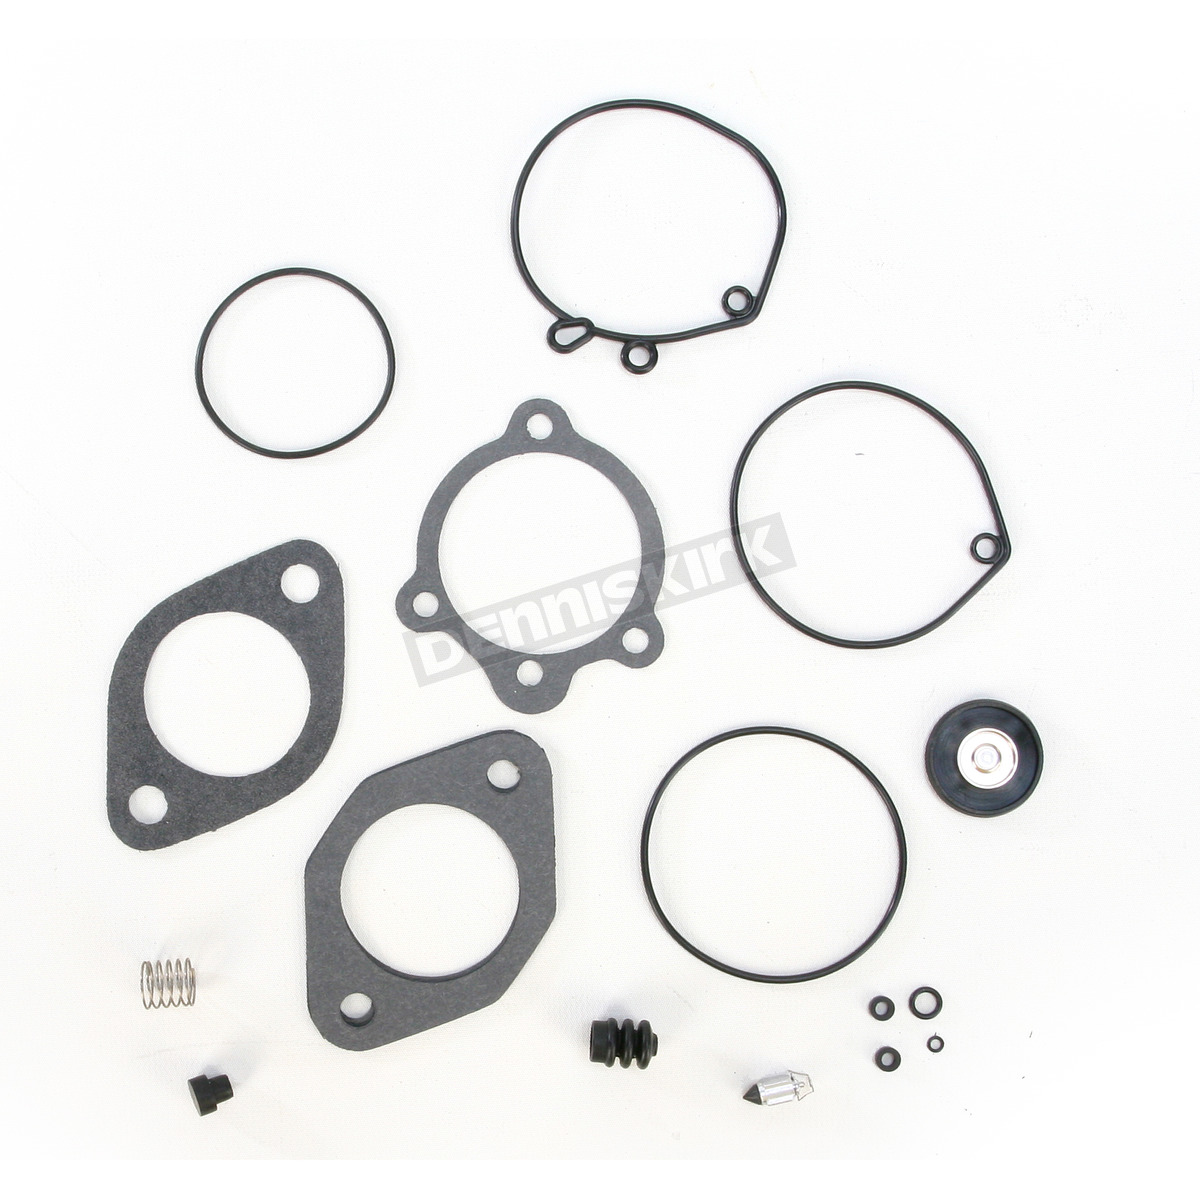 Rebuild Kit for 84-89 Keihin Butterfly Carbs - 1003-0291